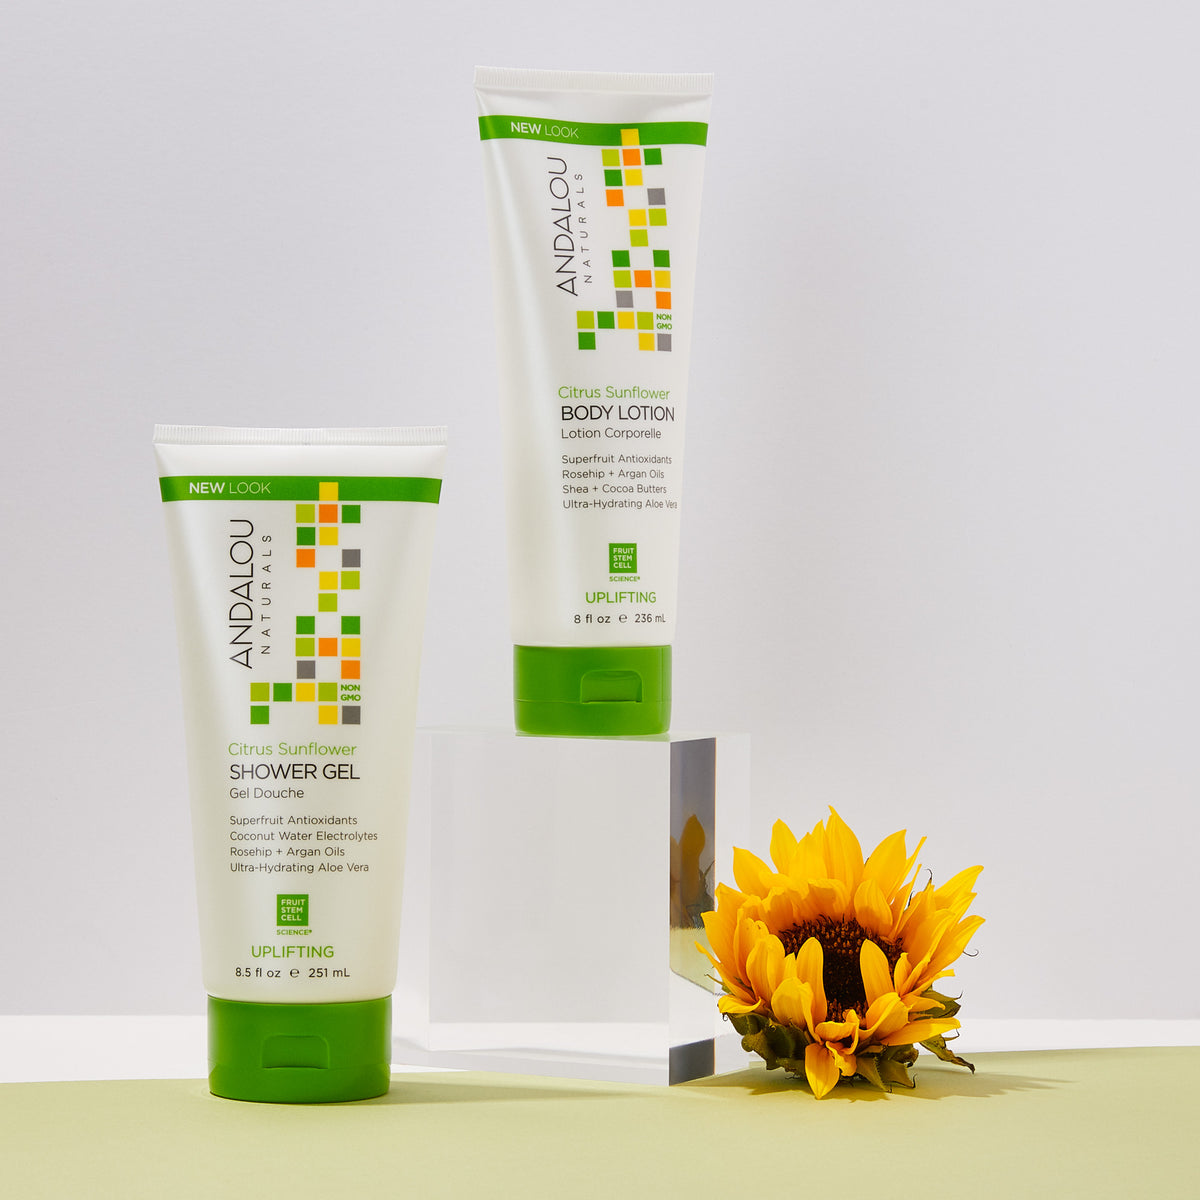 Andalou Naturals Citrus Sunflower Uplifting Shower Gel bottles with a sunflower